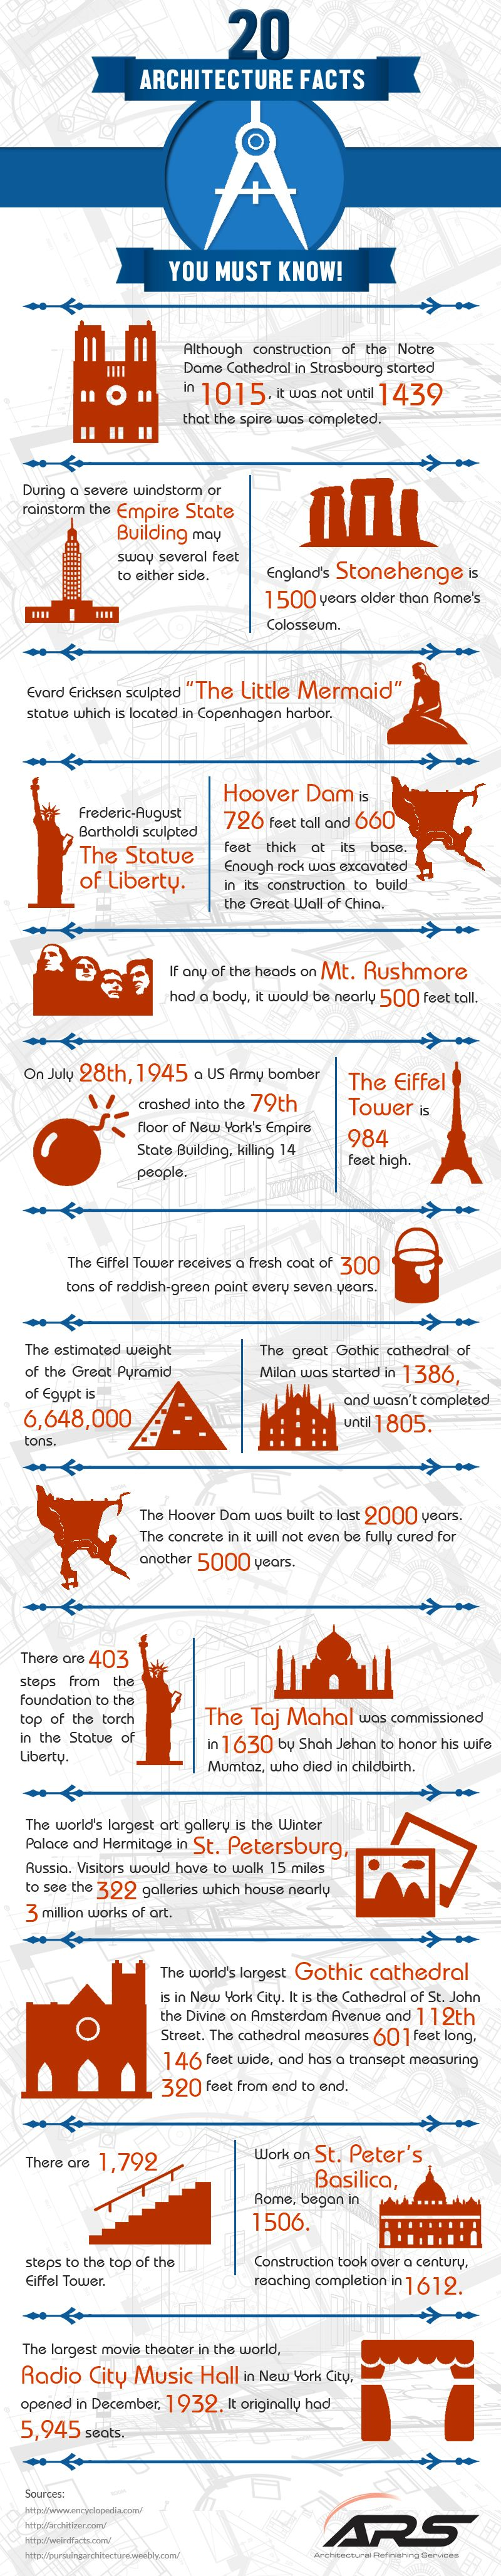 20 Architectural Facts You Must Know [Infographic]